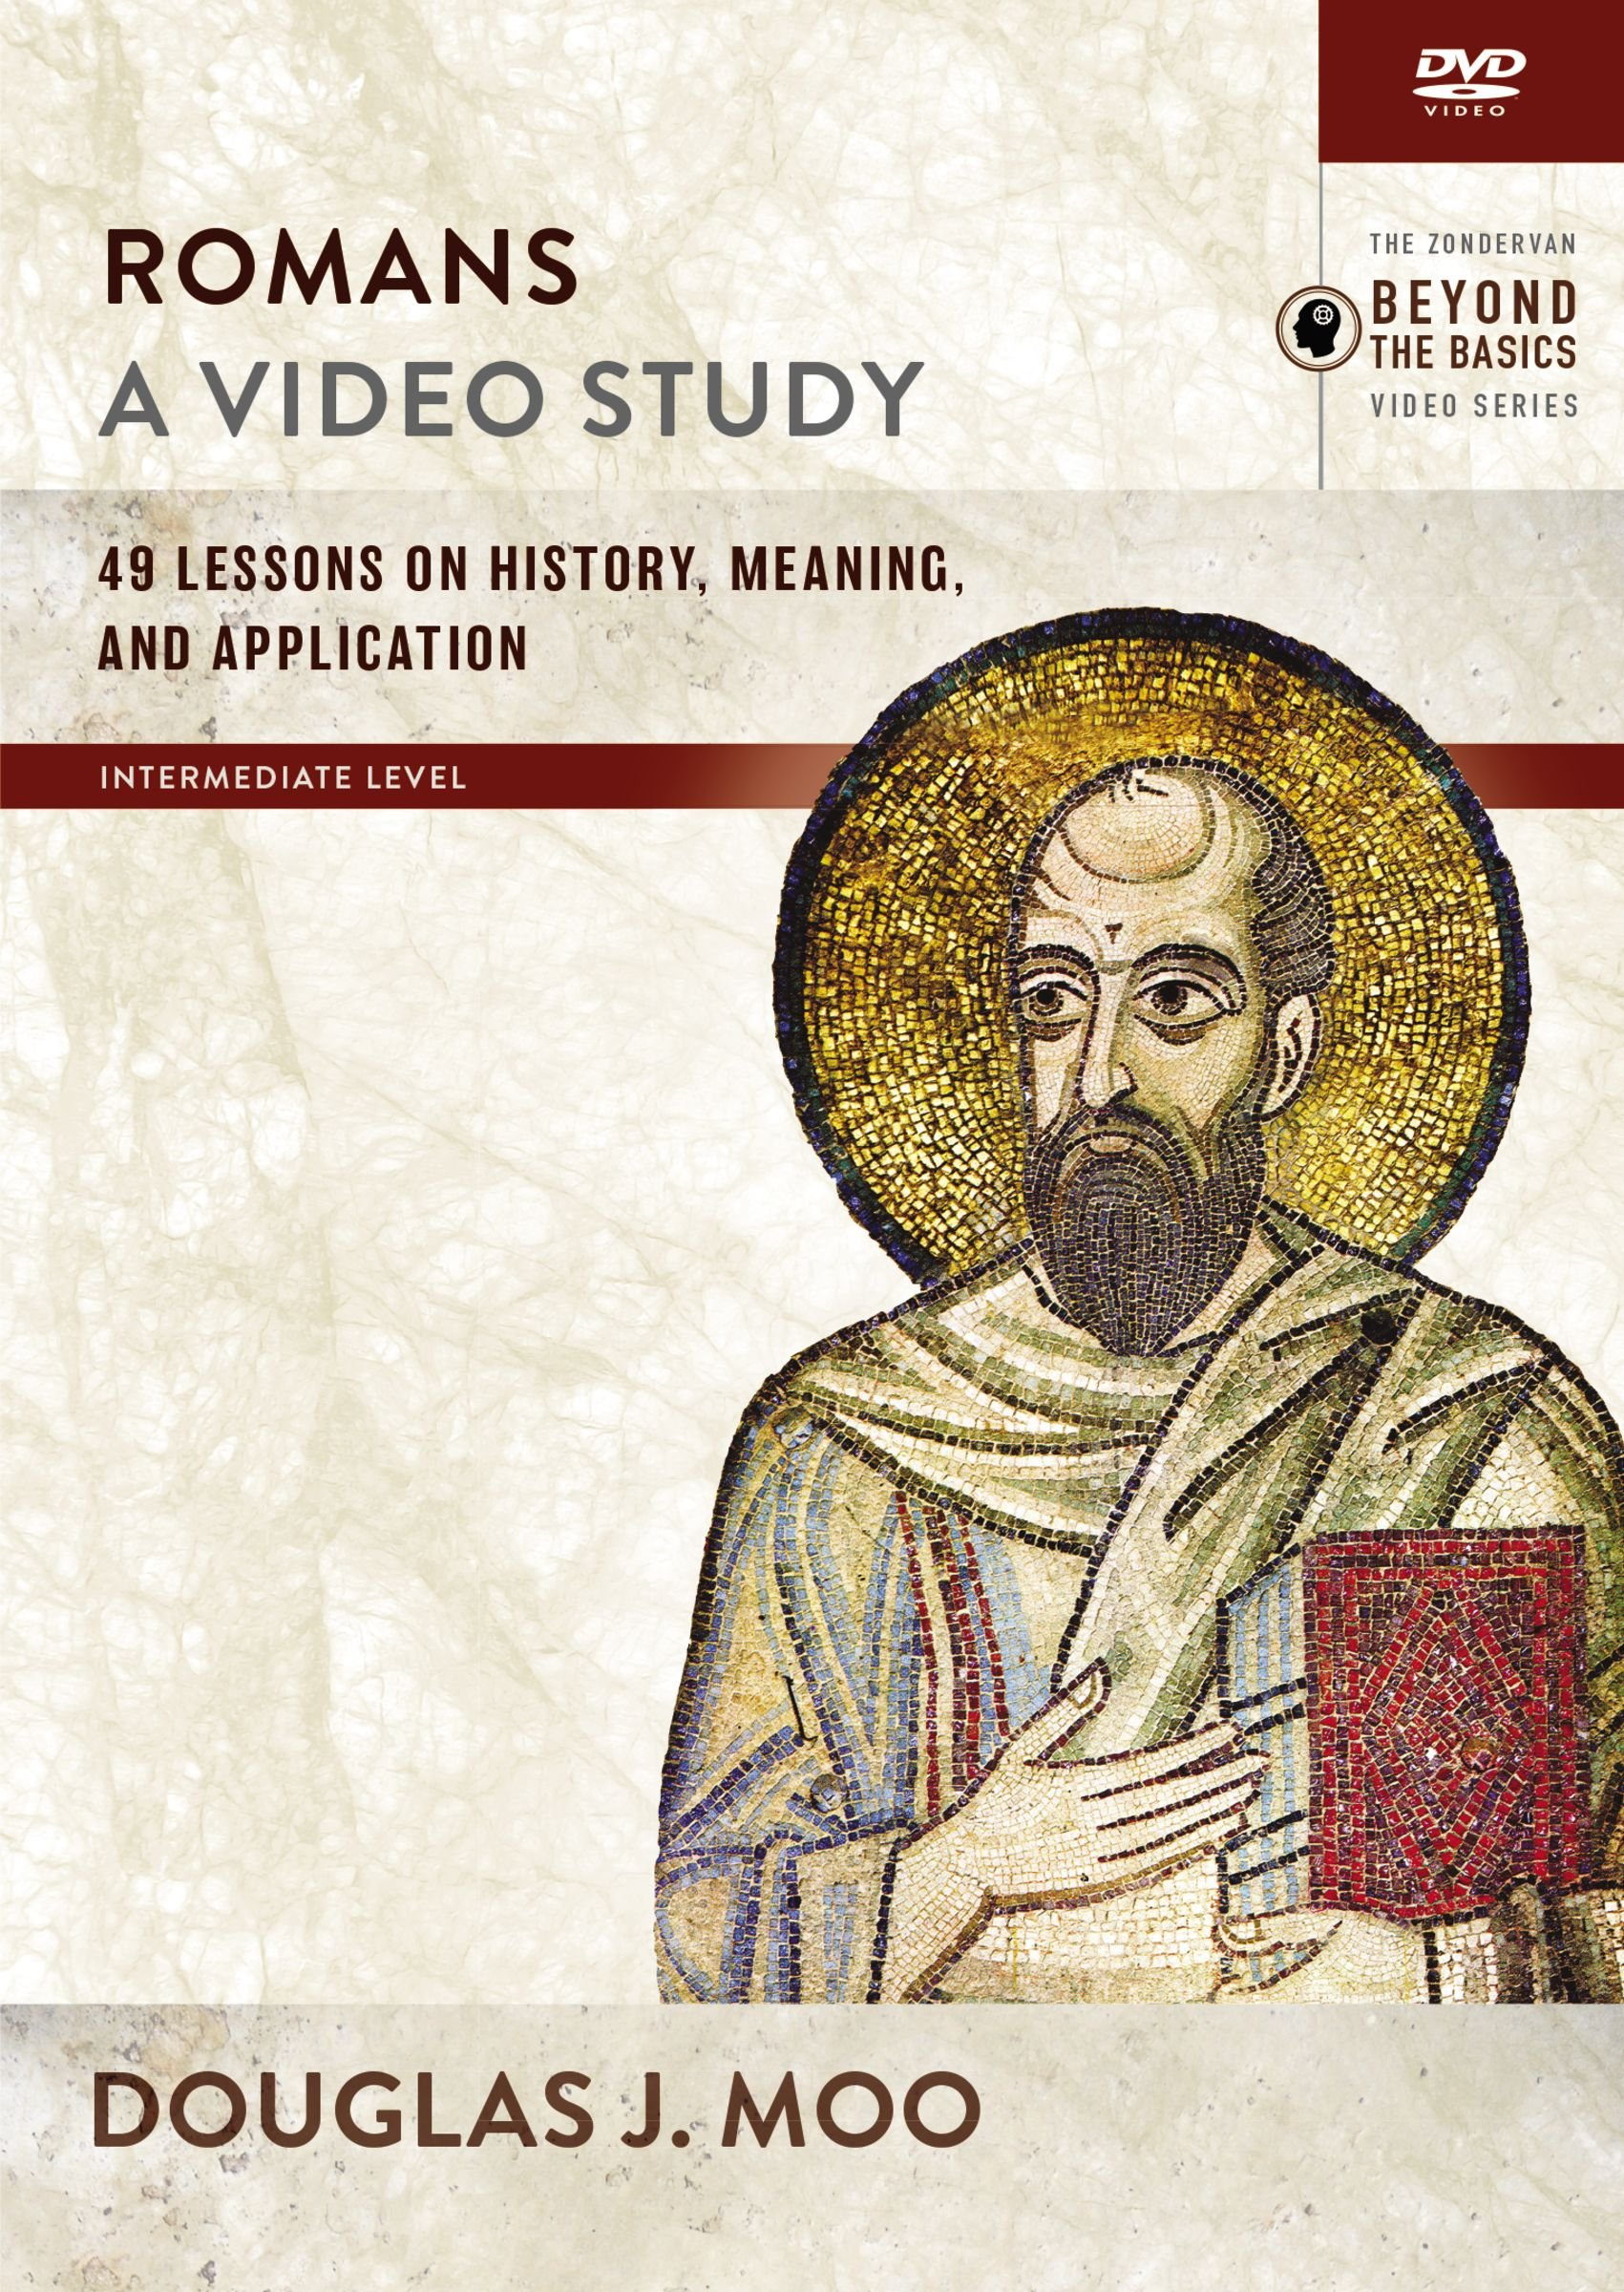 Romans, A Video Study: 49 Lessons on History, Meaning, and Application by HarperCollins Christian Pub.